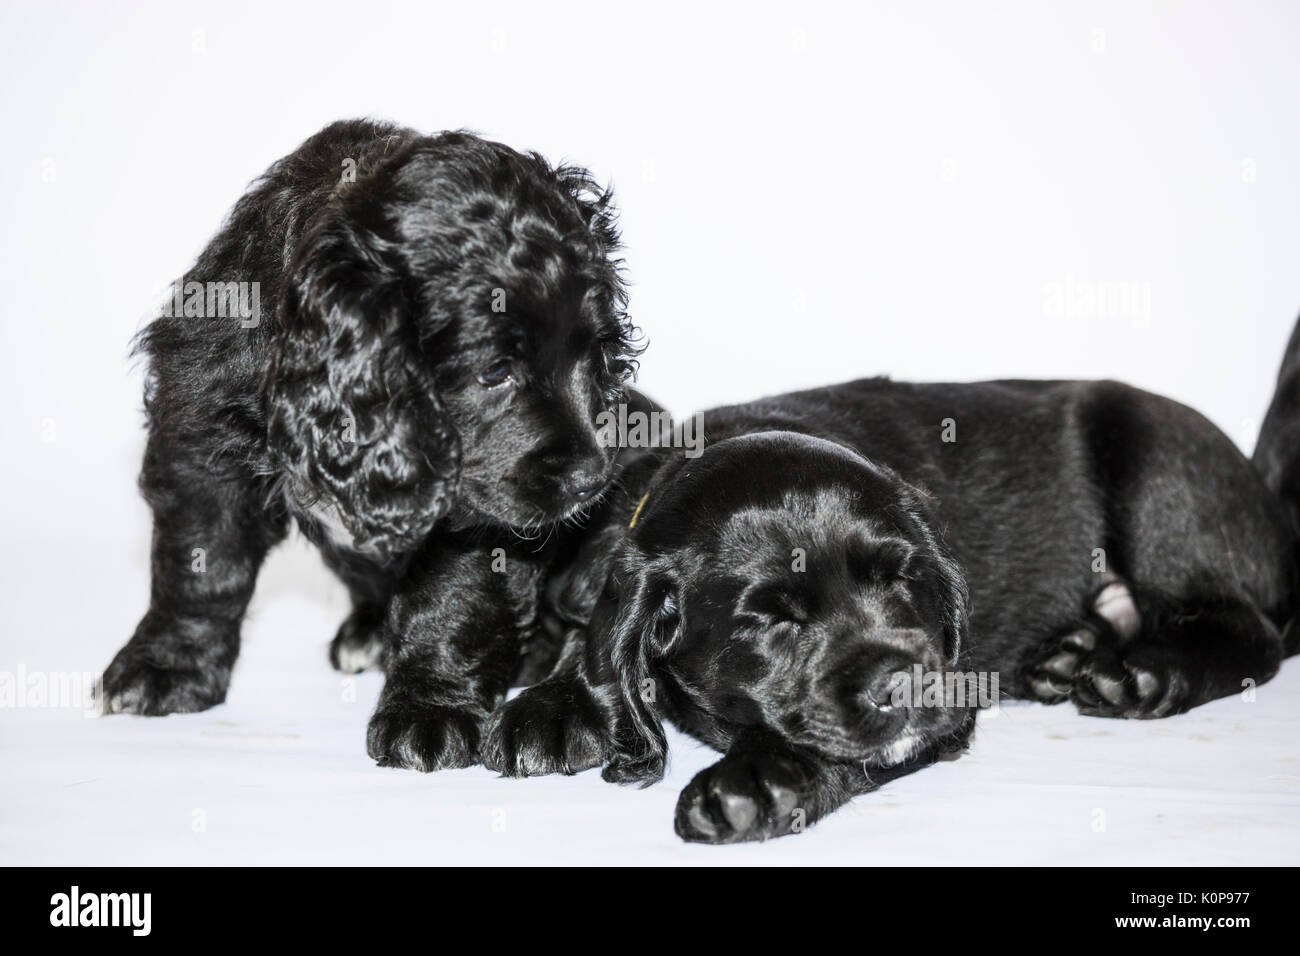 Shiny Black Puppies on white - Stock Image